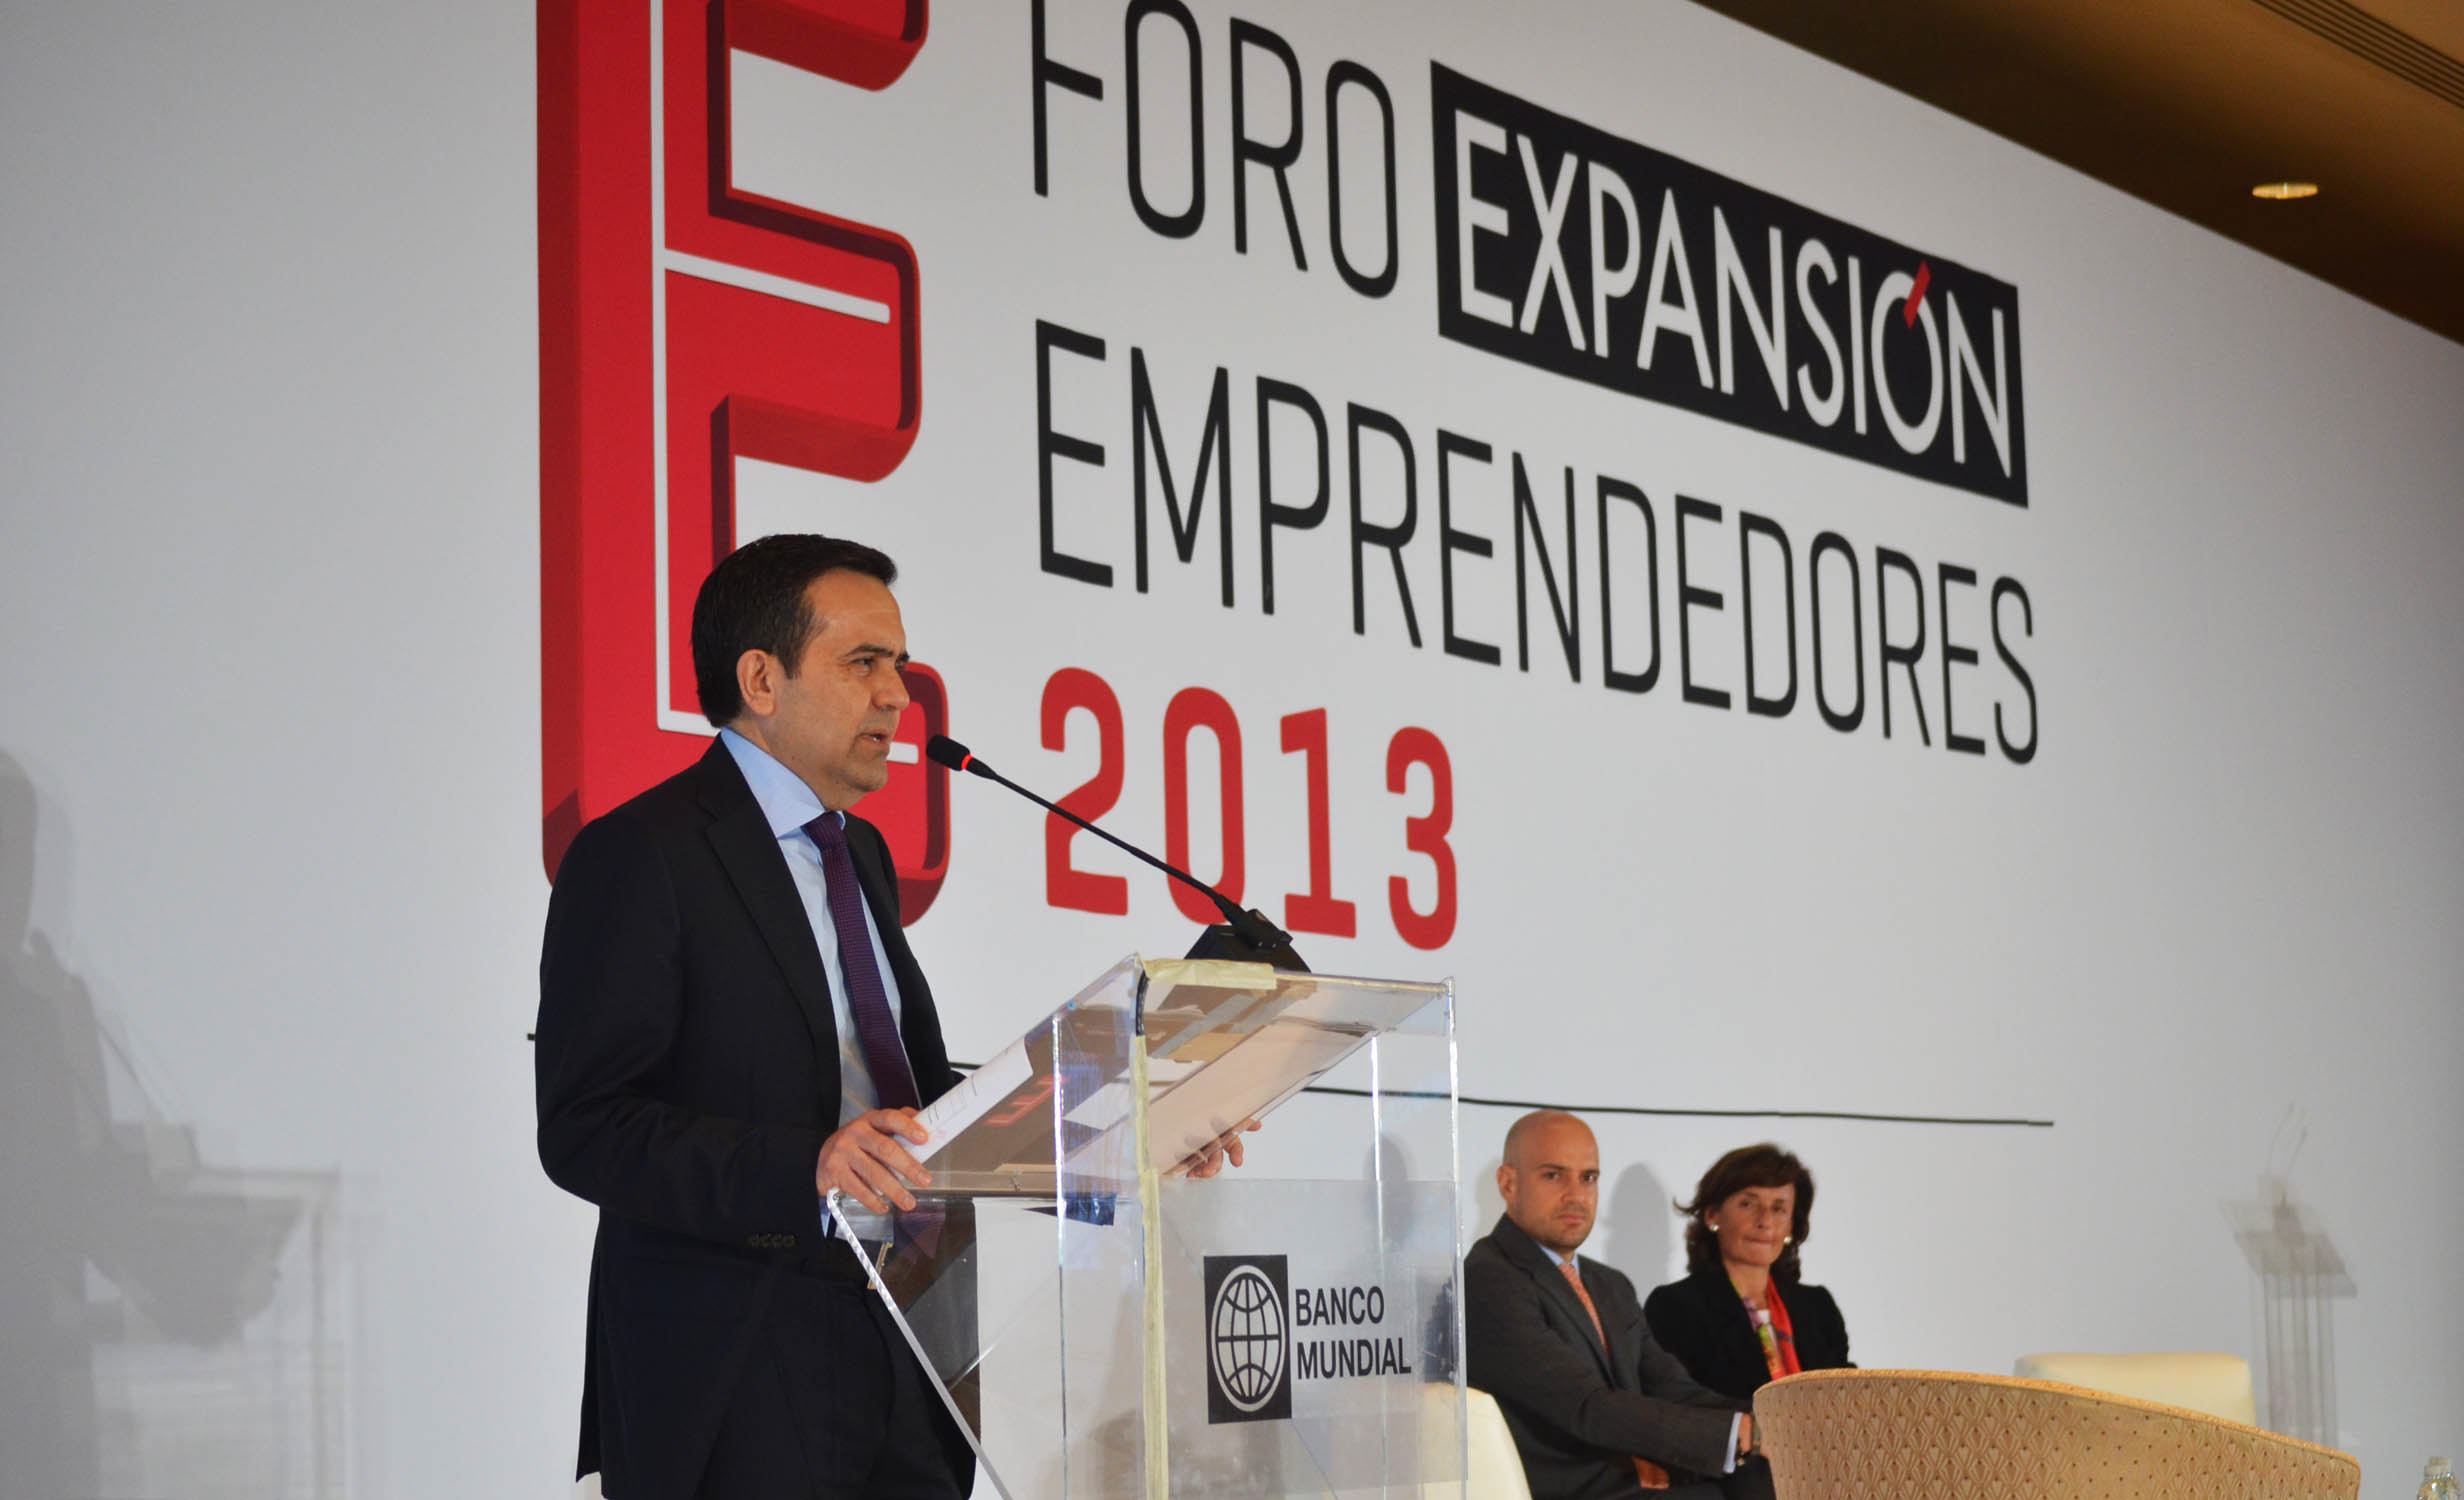 Foro emprendedores expansin 2